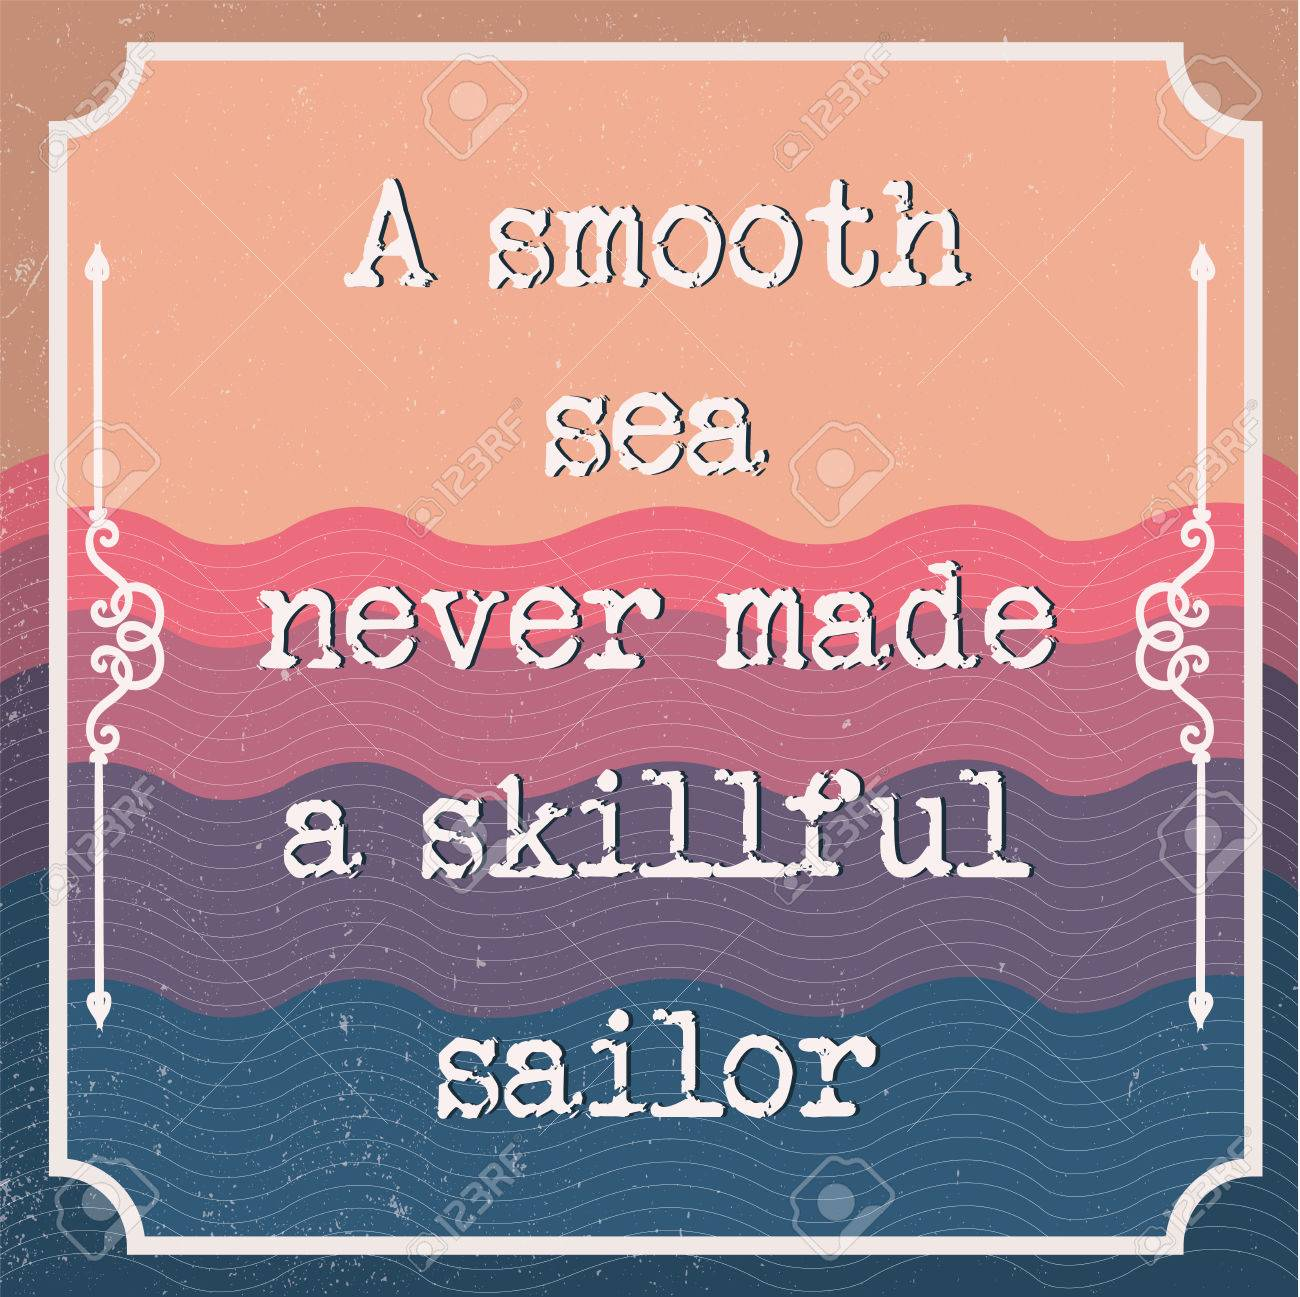 English motivation saying. Encouraging quotes. A smooth sea never made a skillful sailor. Vintage and retro background. Pastel colors. Print for t-shirts and posters. - 82072860